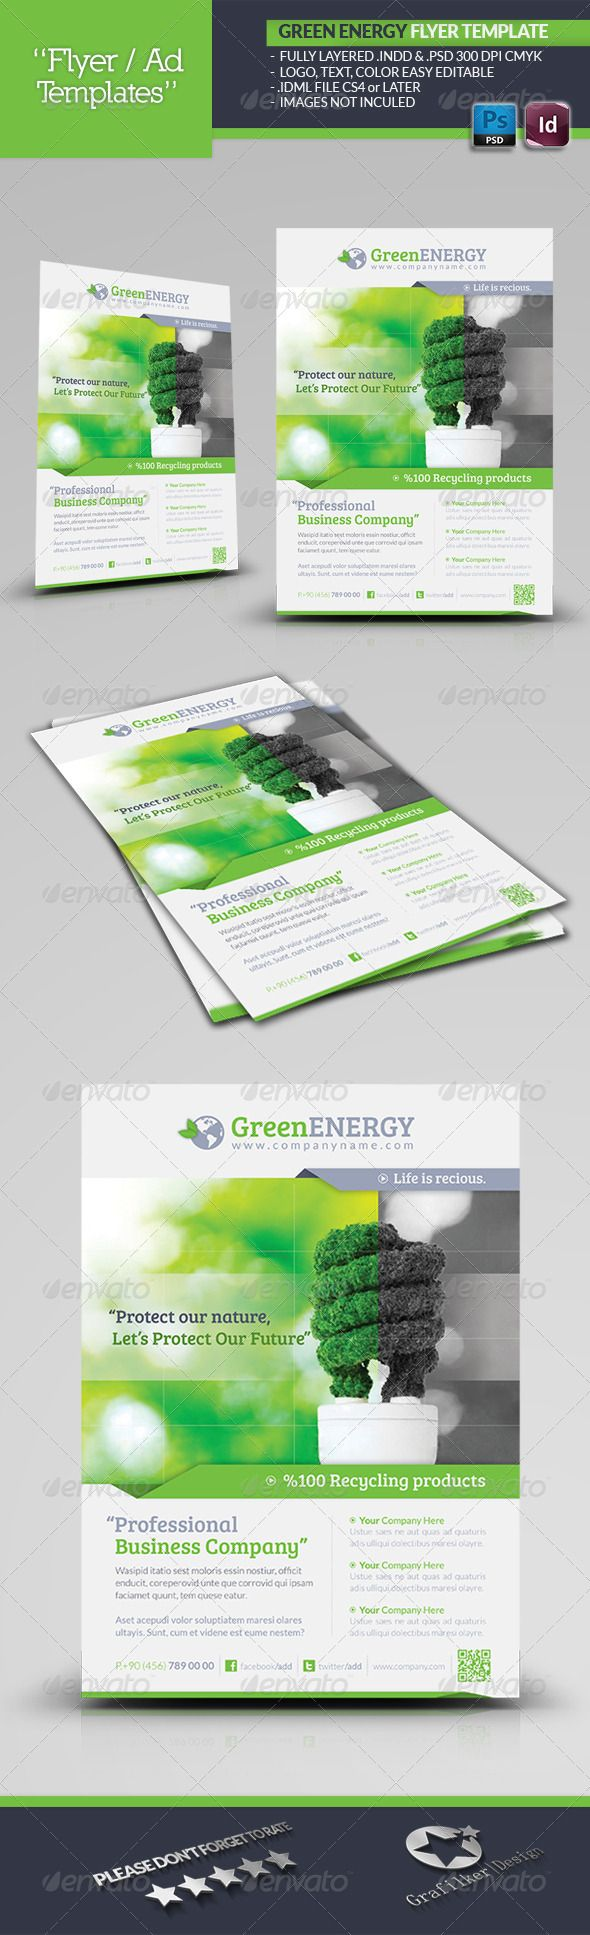 Green Energy Flyer Template #GraphicRiver Green Energy Flyer Template Fully layered INDD Fully layered PSD 300 Dpi, CMYK IDML format open Indesign CS4 or later Completely editable, print ready Text/Font or Color can be altered as needed All Image are in vector format, so can customise easily Photos are not included in the file Font File: Lato Font: .fontsquirrel /fonts/lato Bree-serif: .fontsquirrel /fonts/bree-serif Help.txt file Created: 11June13 GraphicsFilesIncluded: PhotoshopPSD…